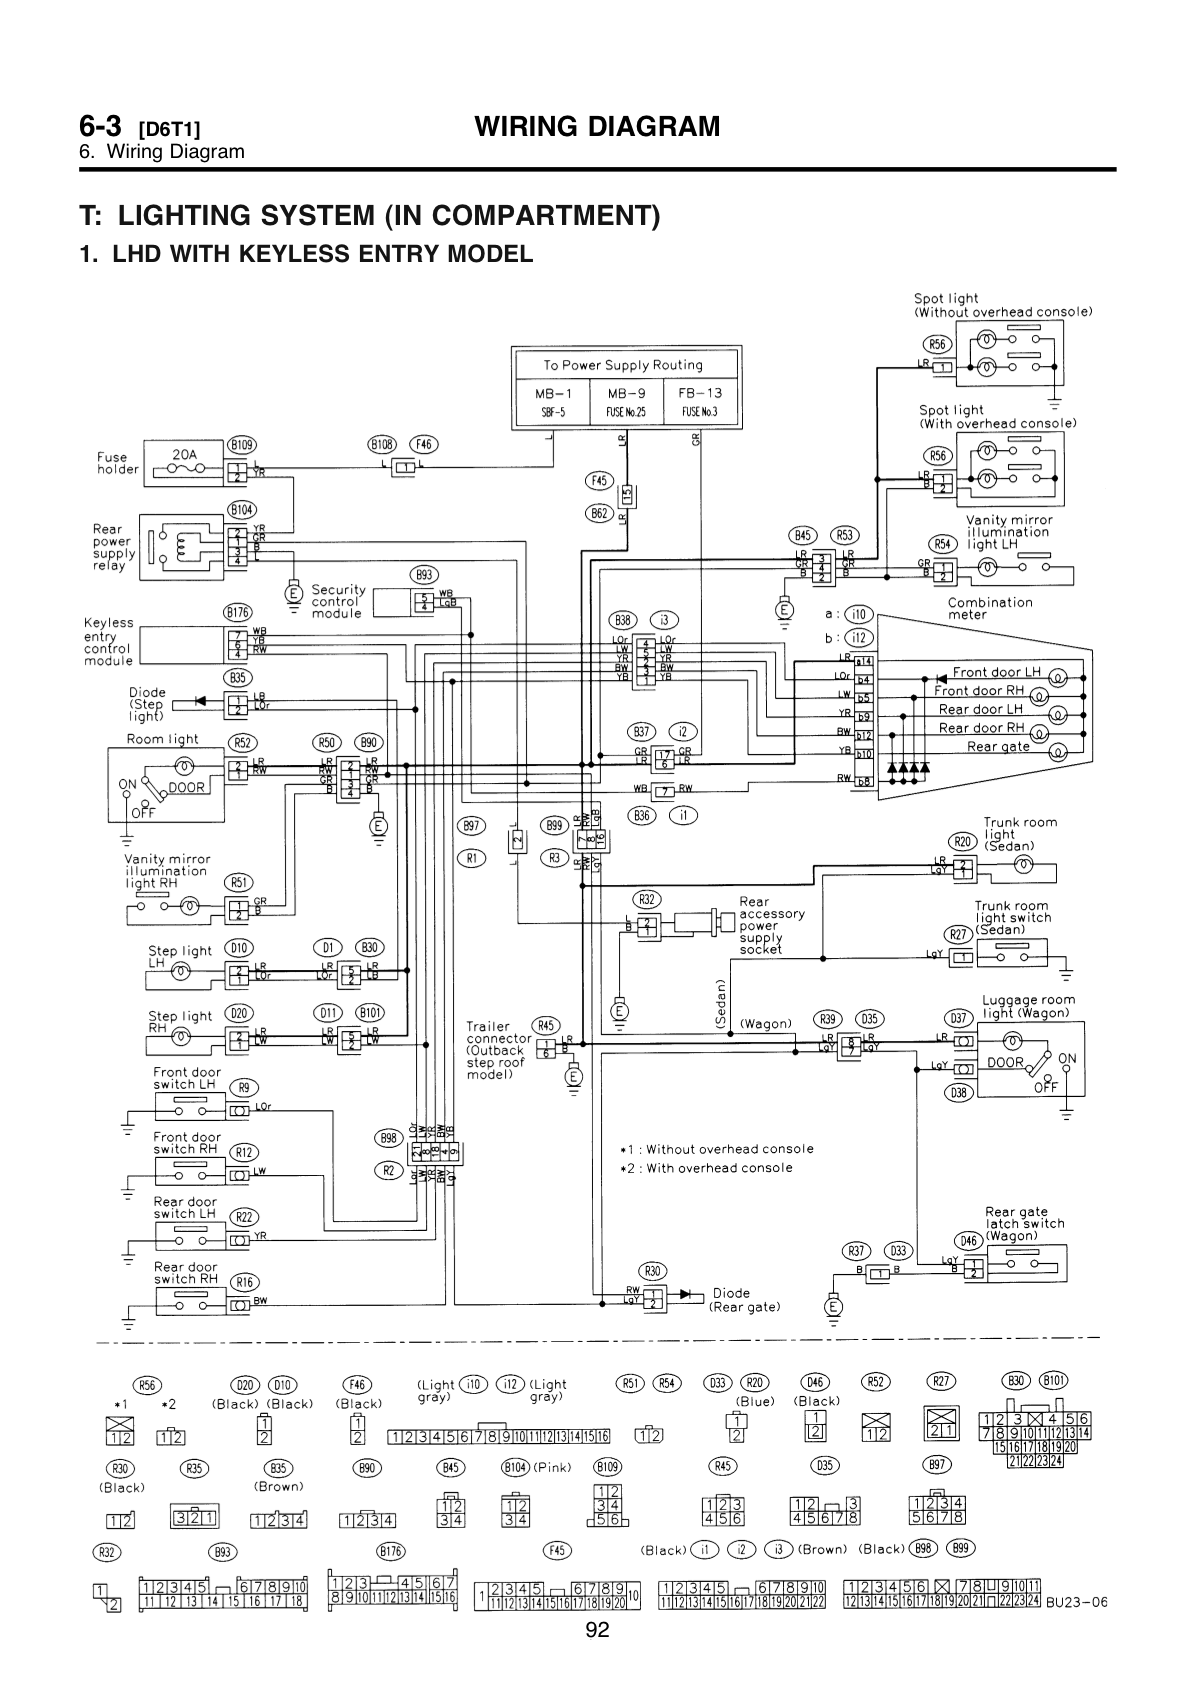 2007 Subaru Legacy Wiring Diagram Opinions About Car Stereo Needs 1999 33 2013 Radio